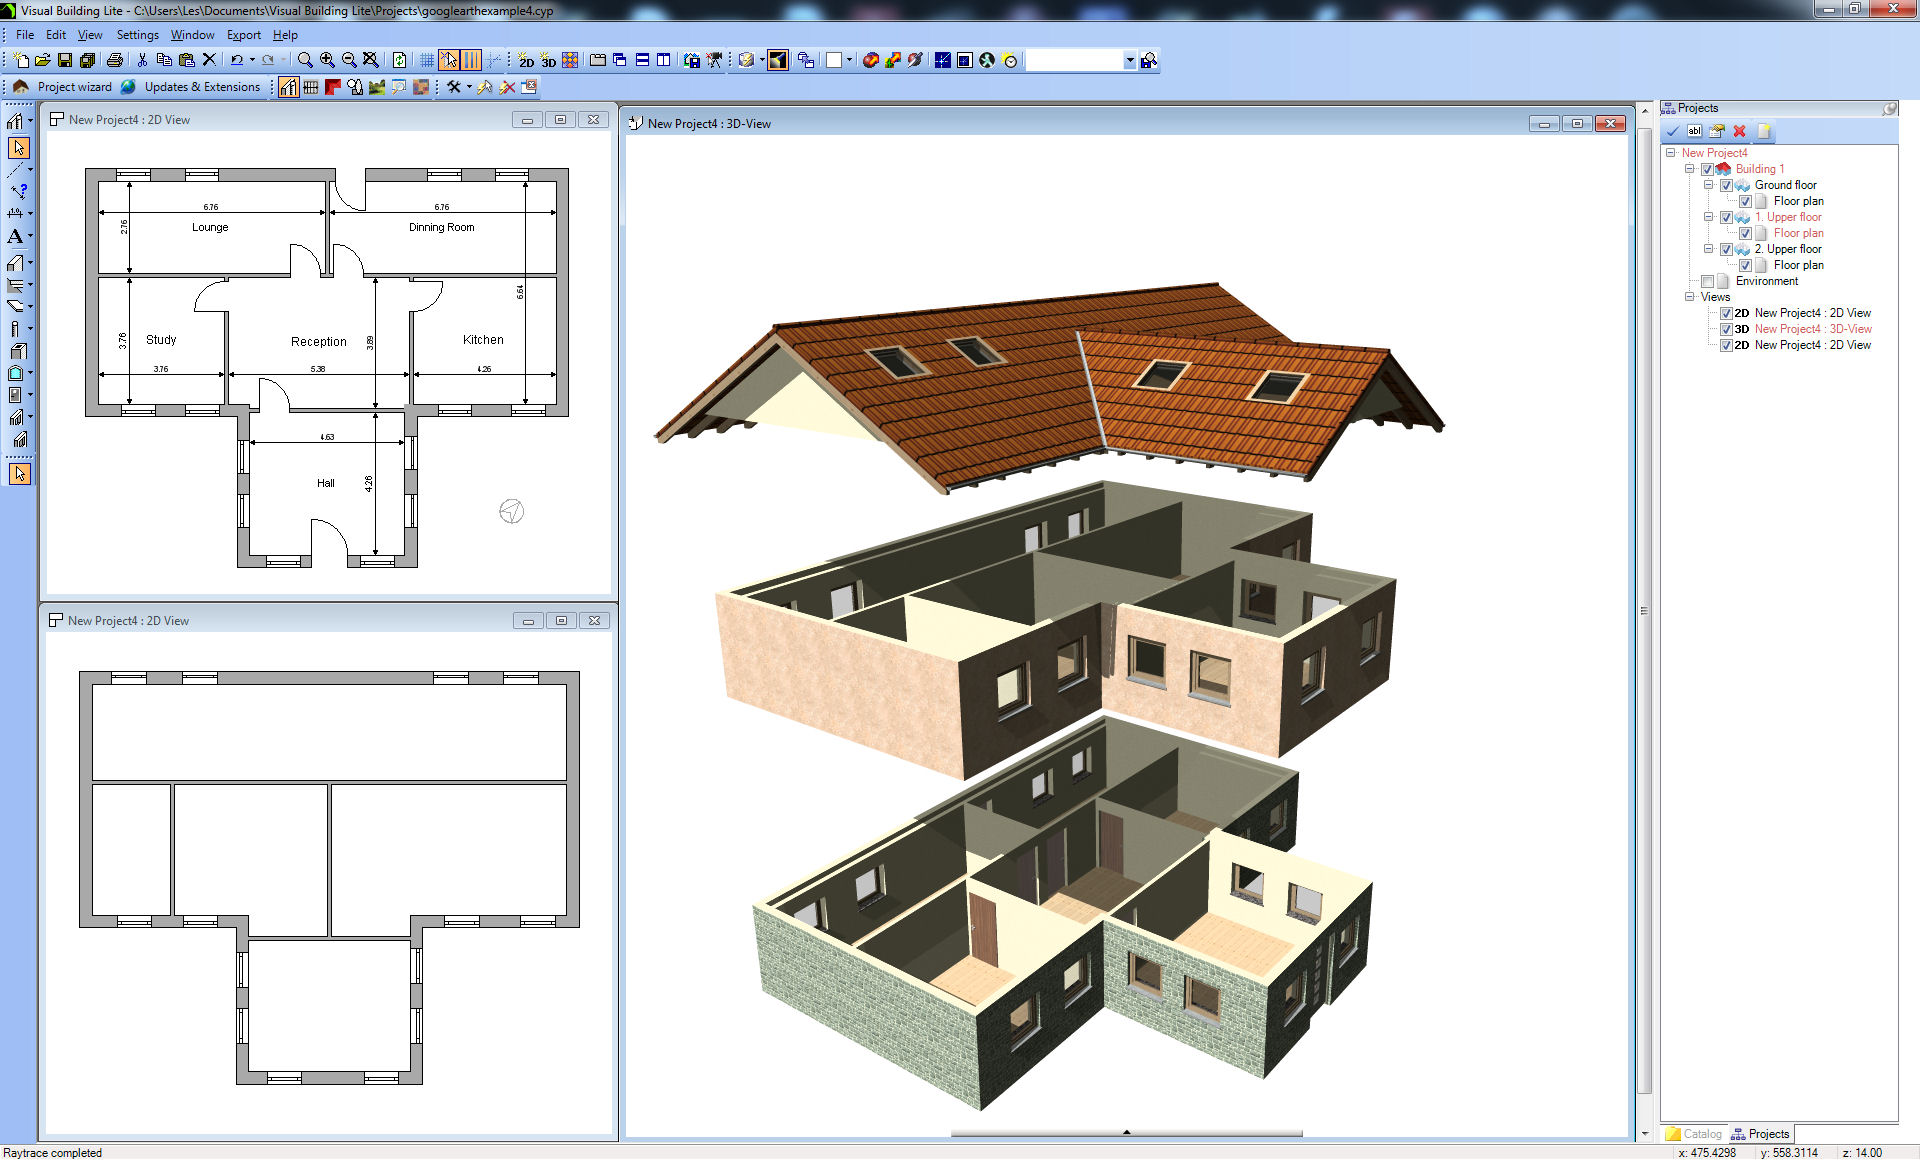 Visual building topic exploded house view 1 1 Free 3d building design software